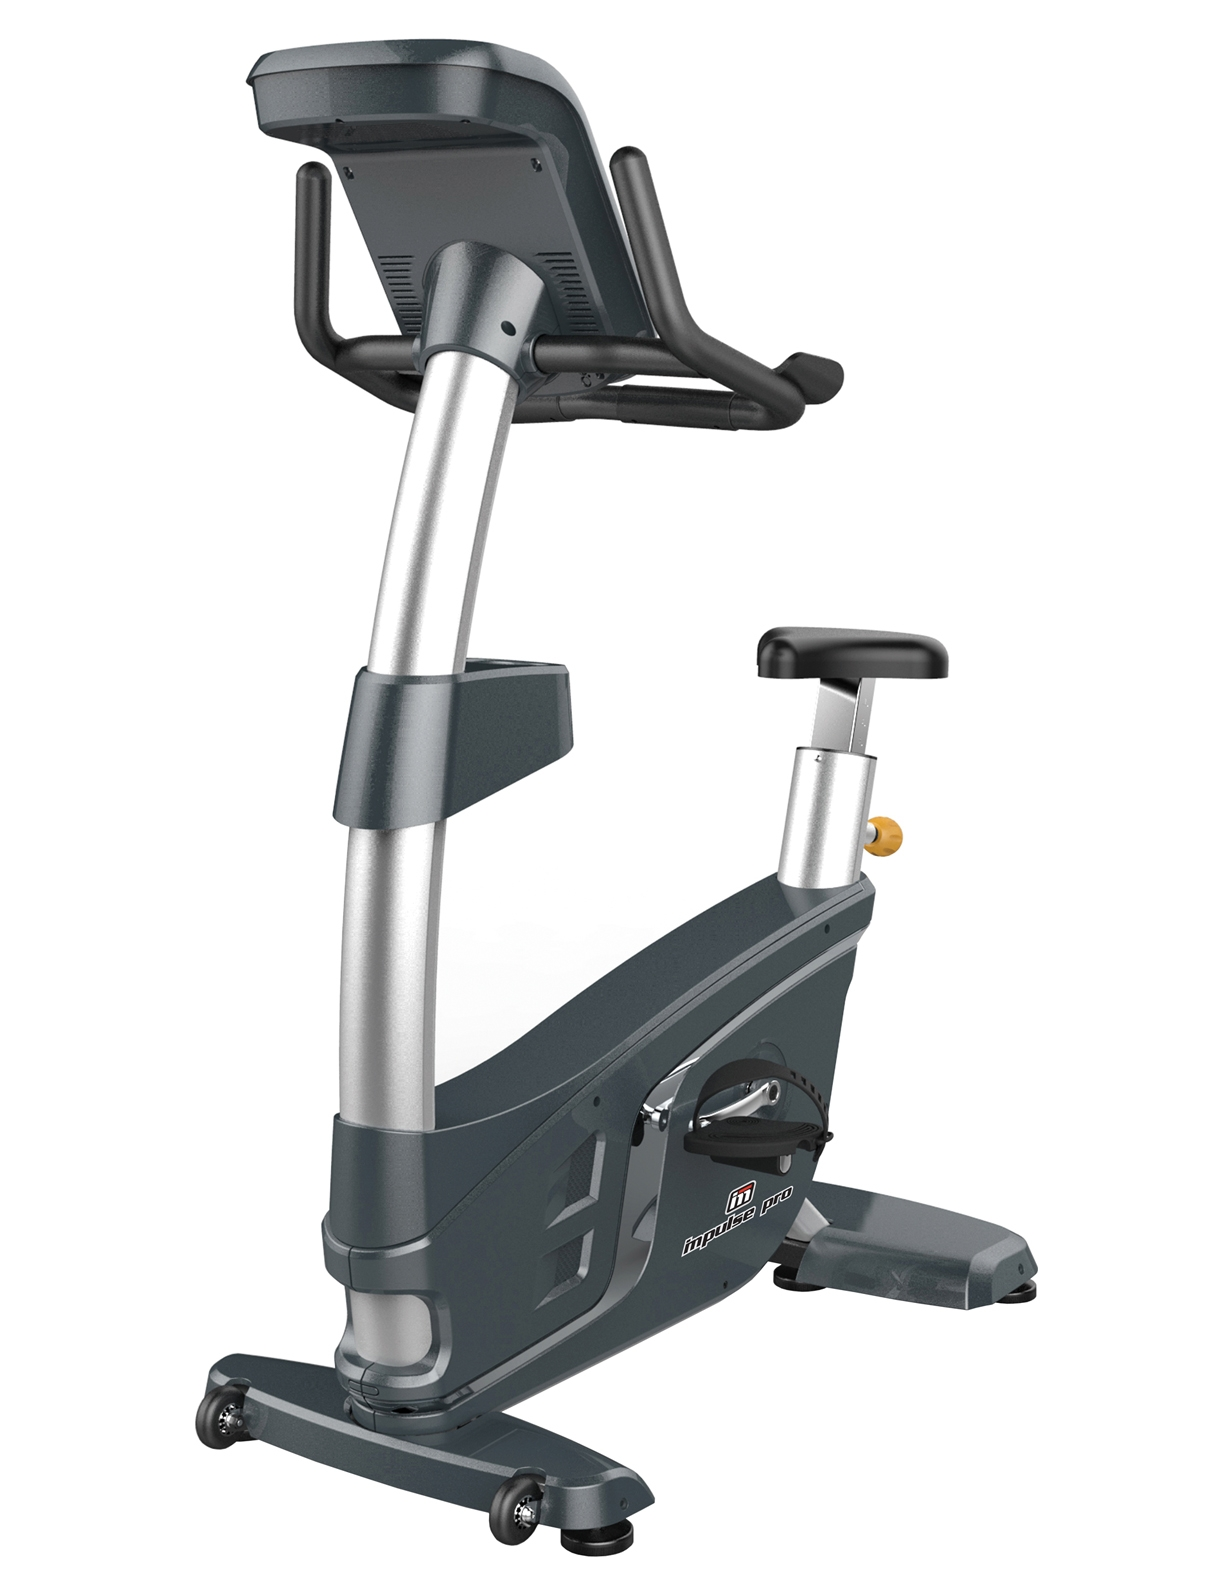 RU700 UPRIGHT BIKE